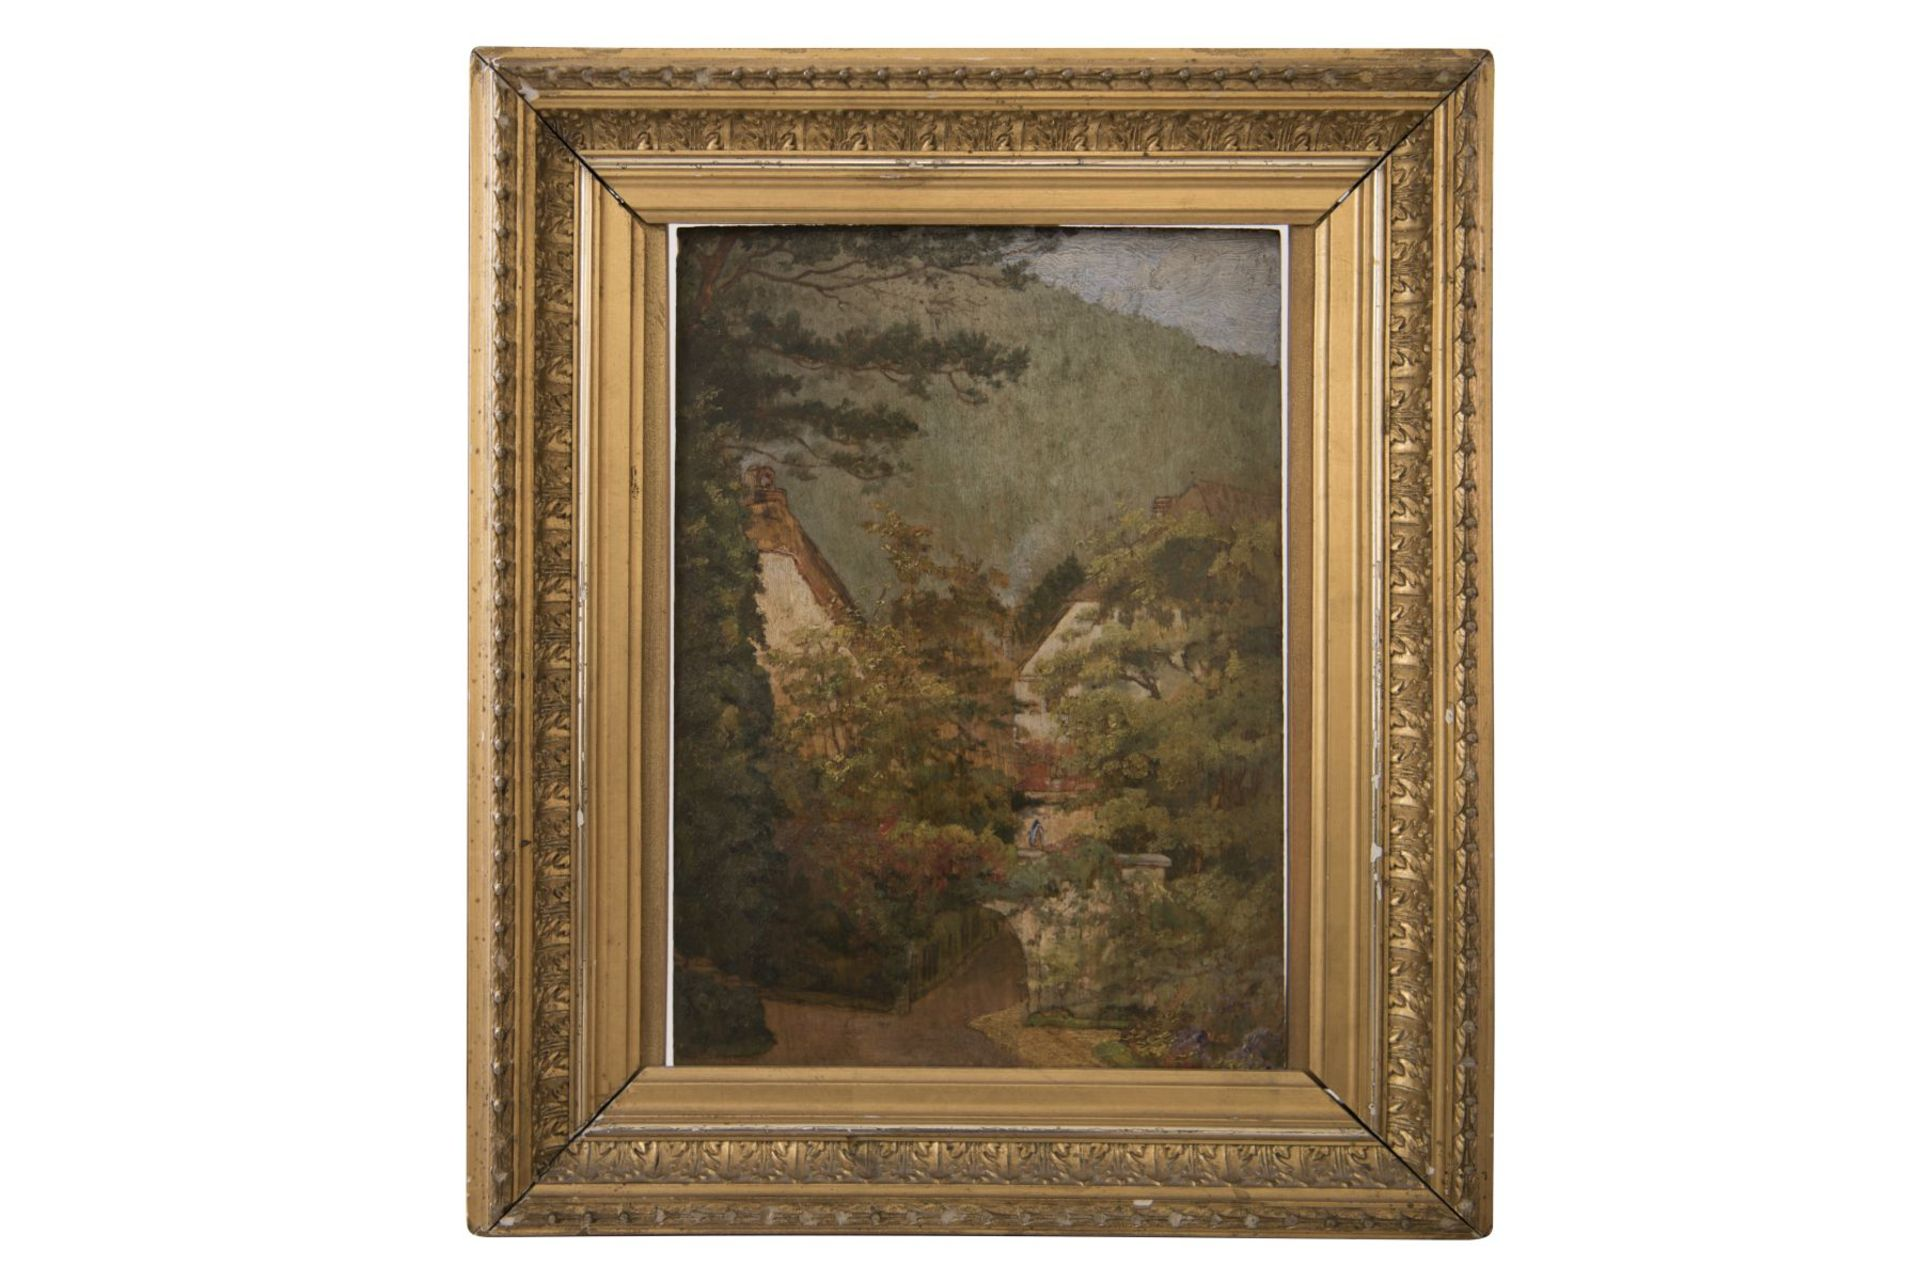 Impressionistic view of two houses by a river, late 19th century - Image 6 of 6